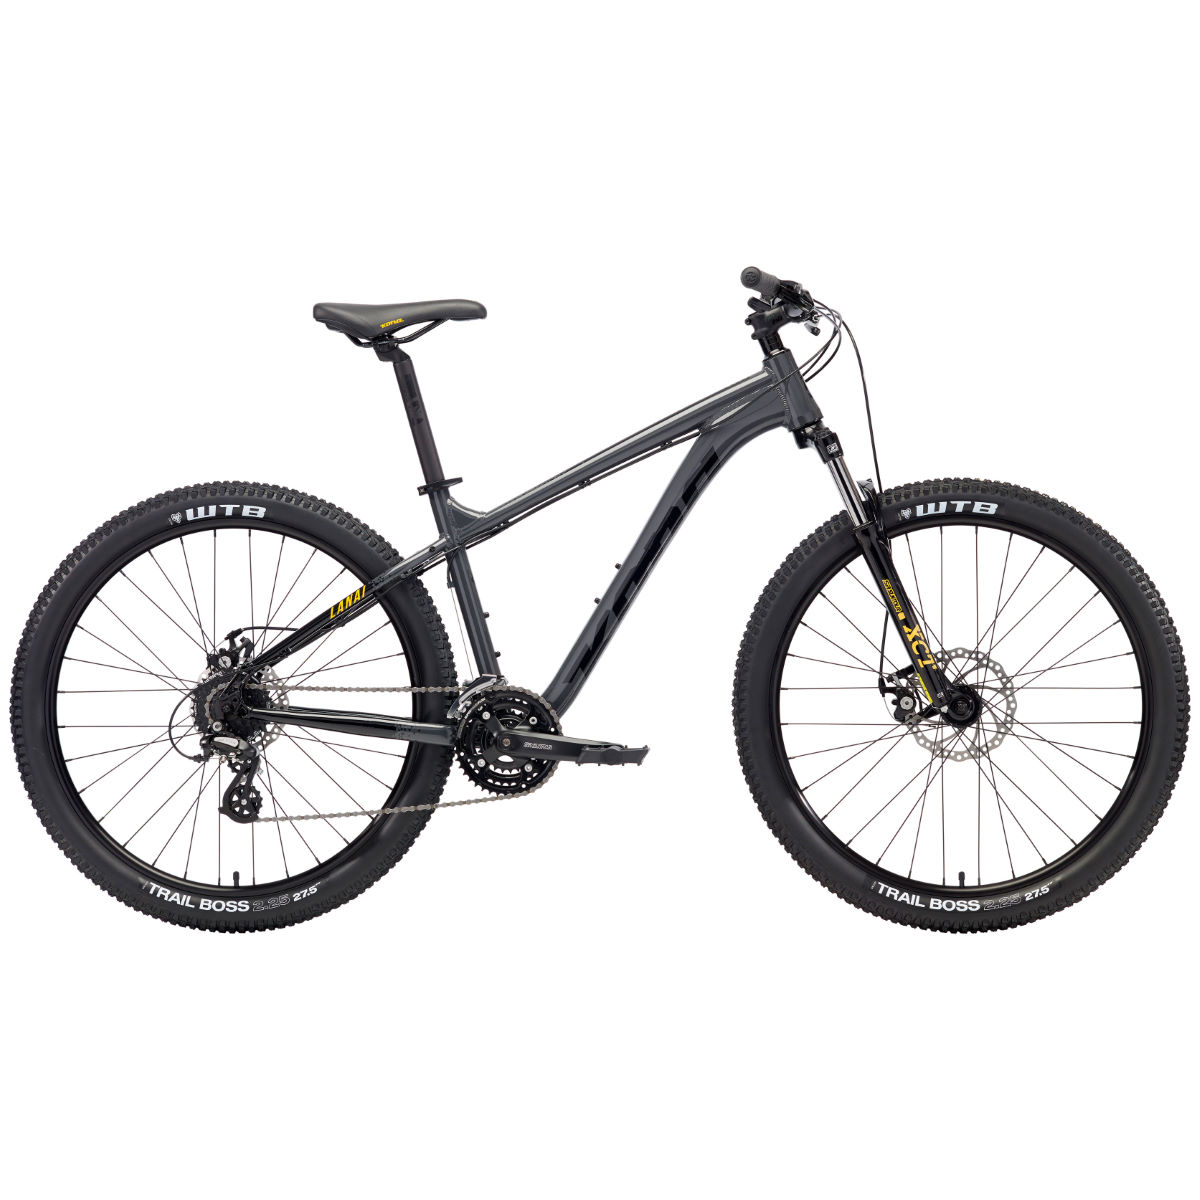 VTT Kona Lanai (2018) - Small Stock Bike Charbon VTT semi-rigides